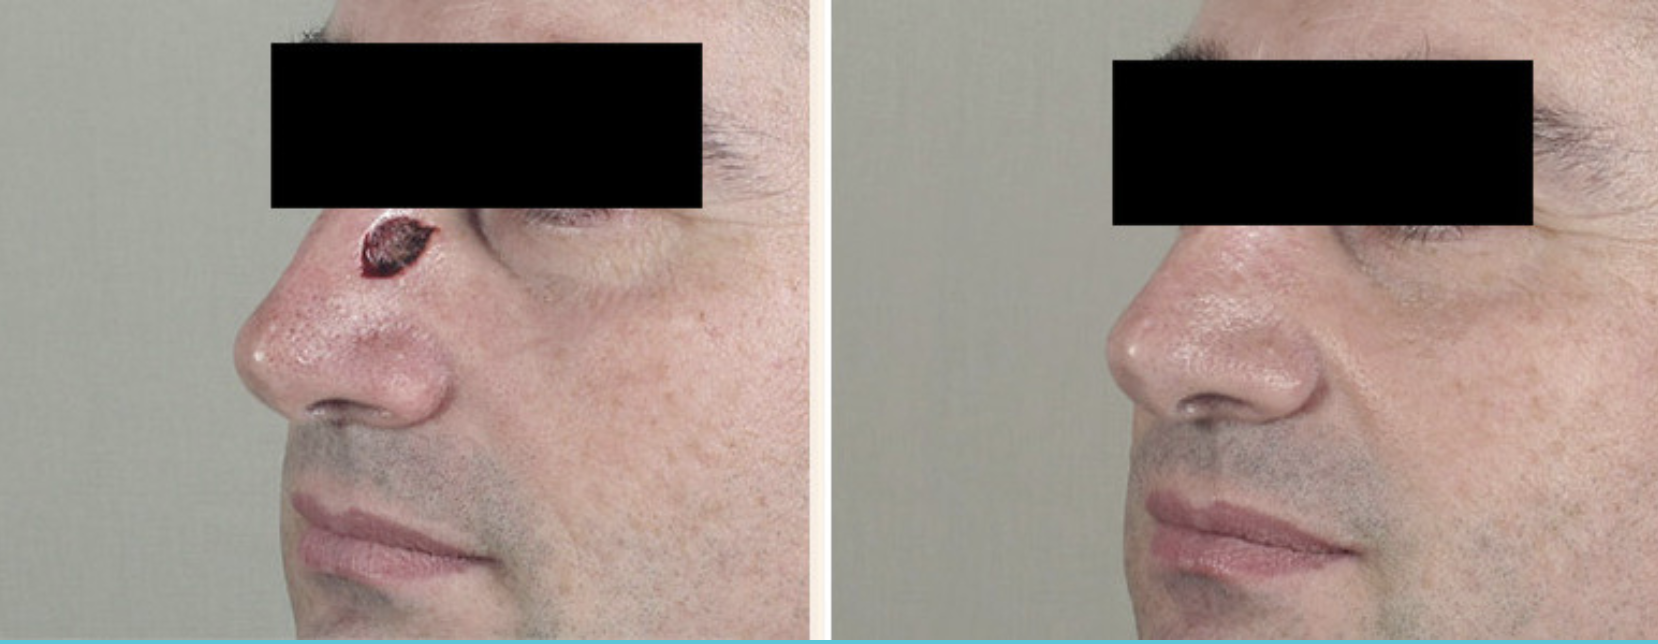 skin cancer before and after